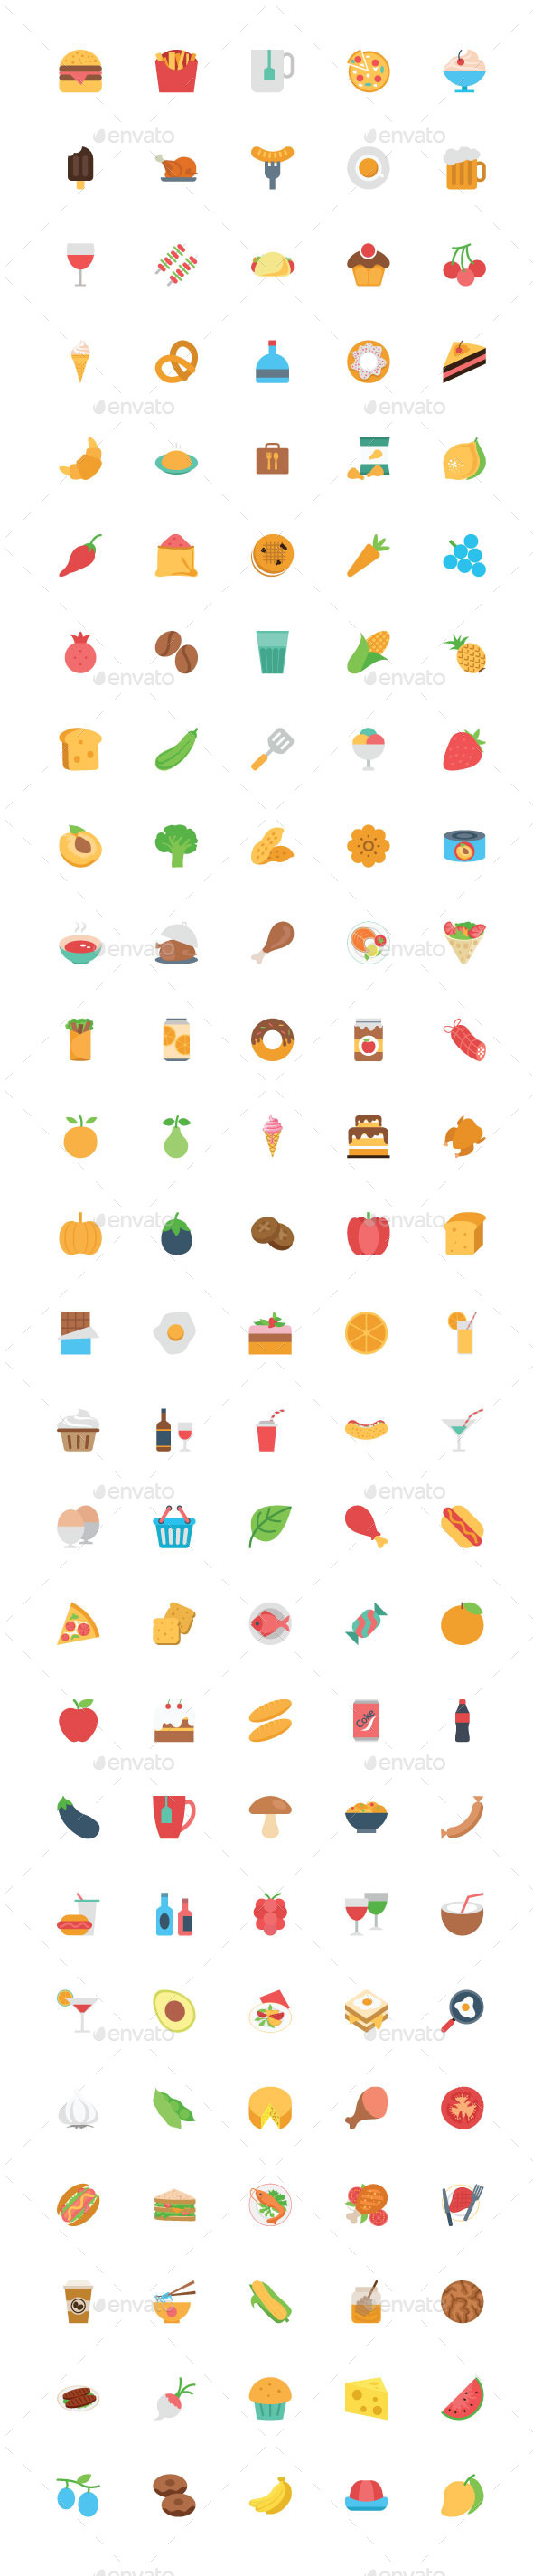 125+ Flat Food Vector Icons - Food Objects